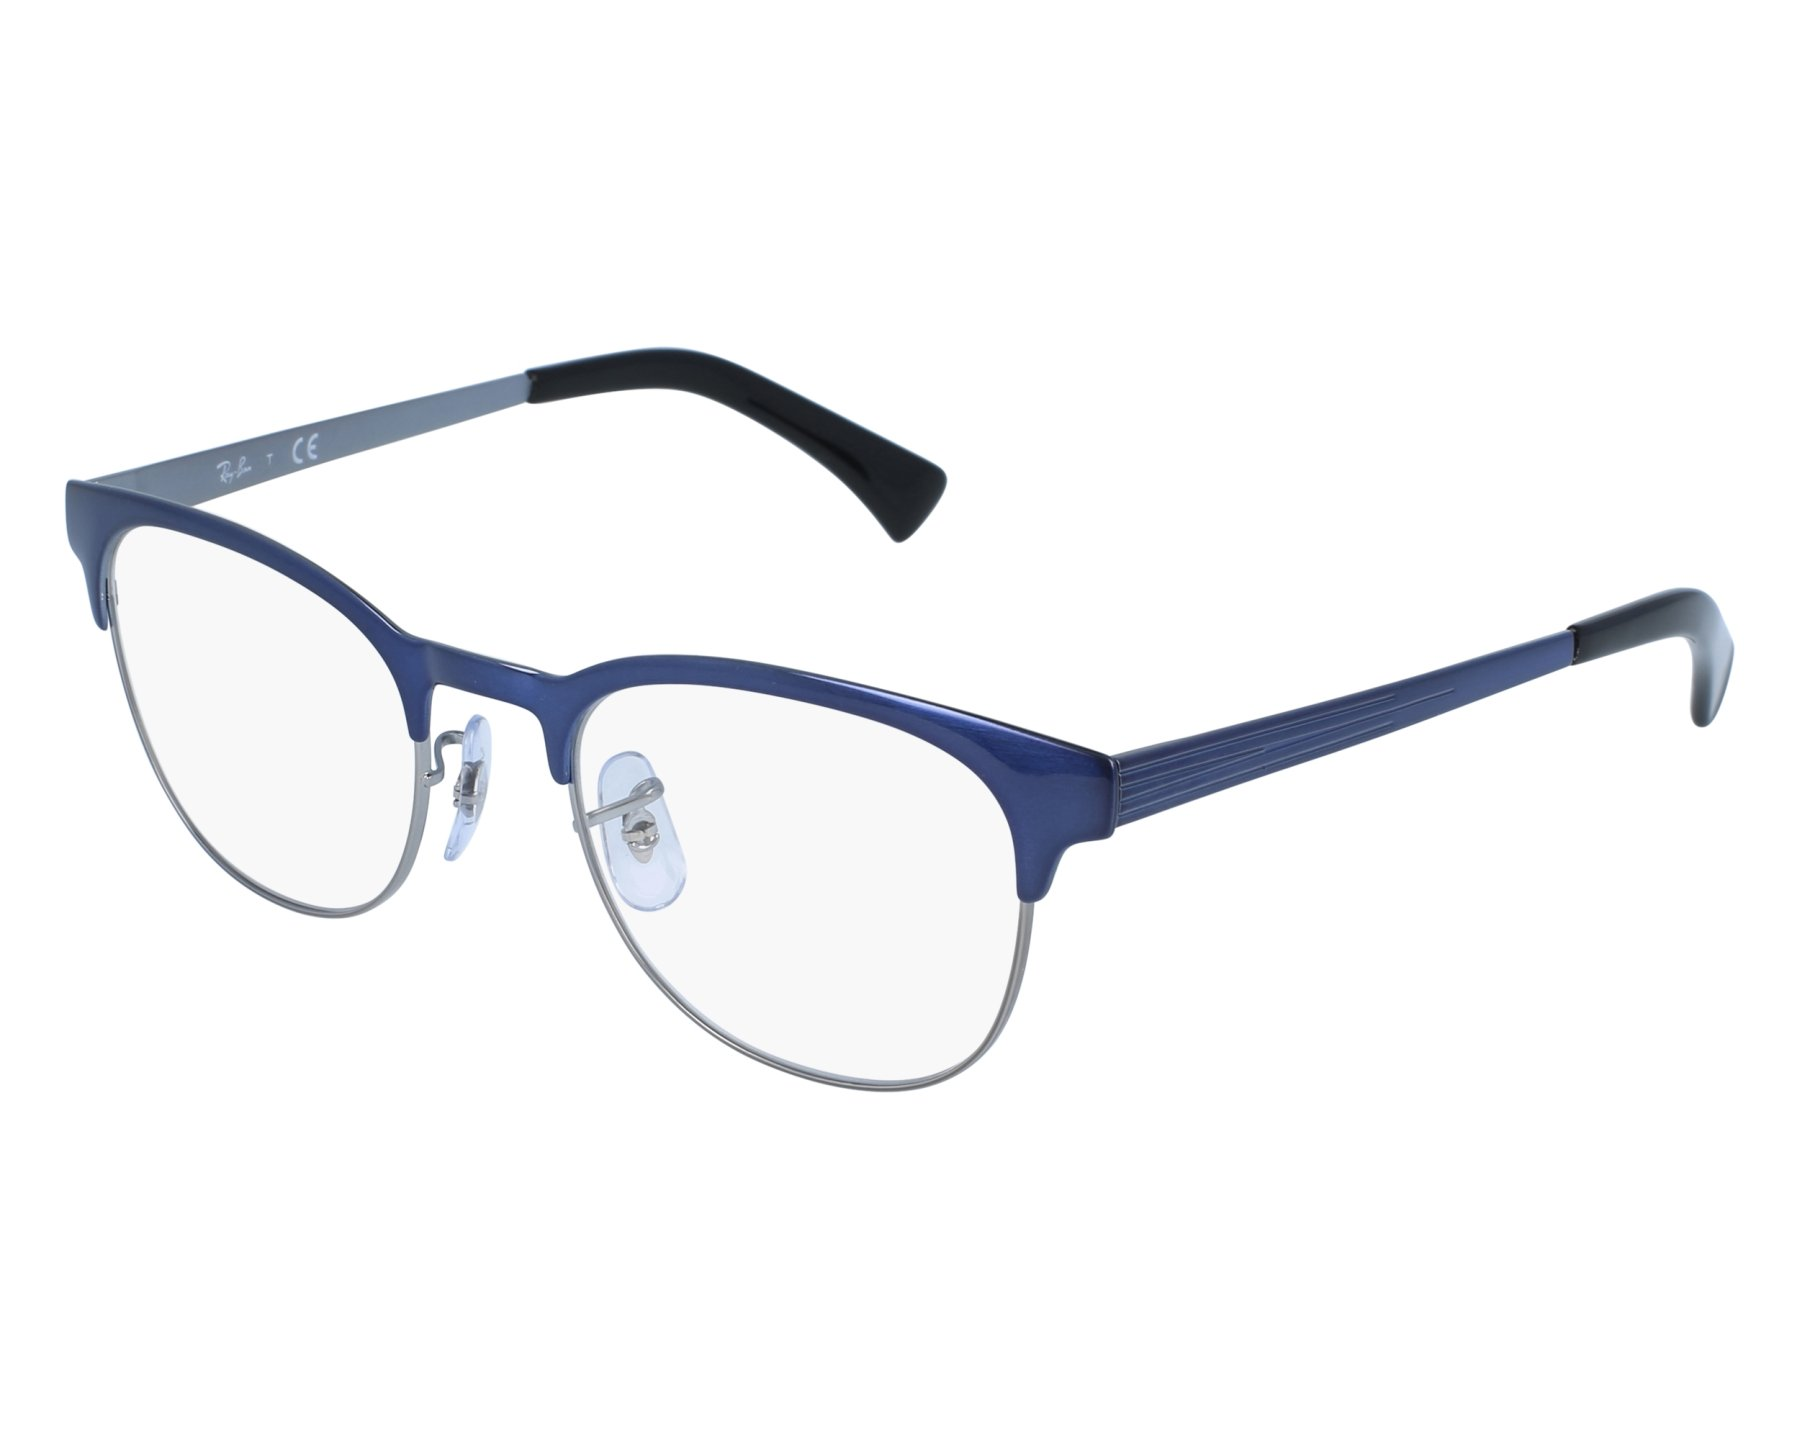 2bf9647ab4 eyeglasses Ray-Ban RX-6317 2863 49-20 Blue Silver front view